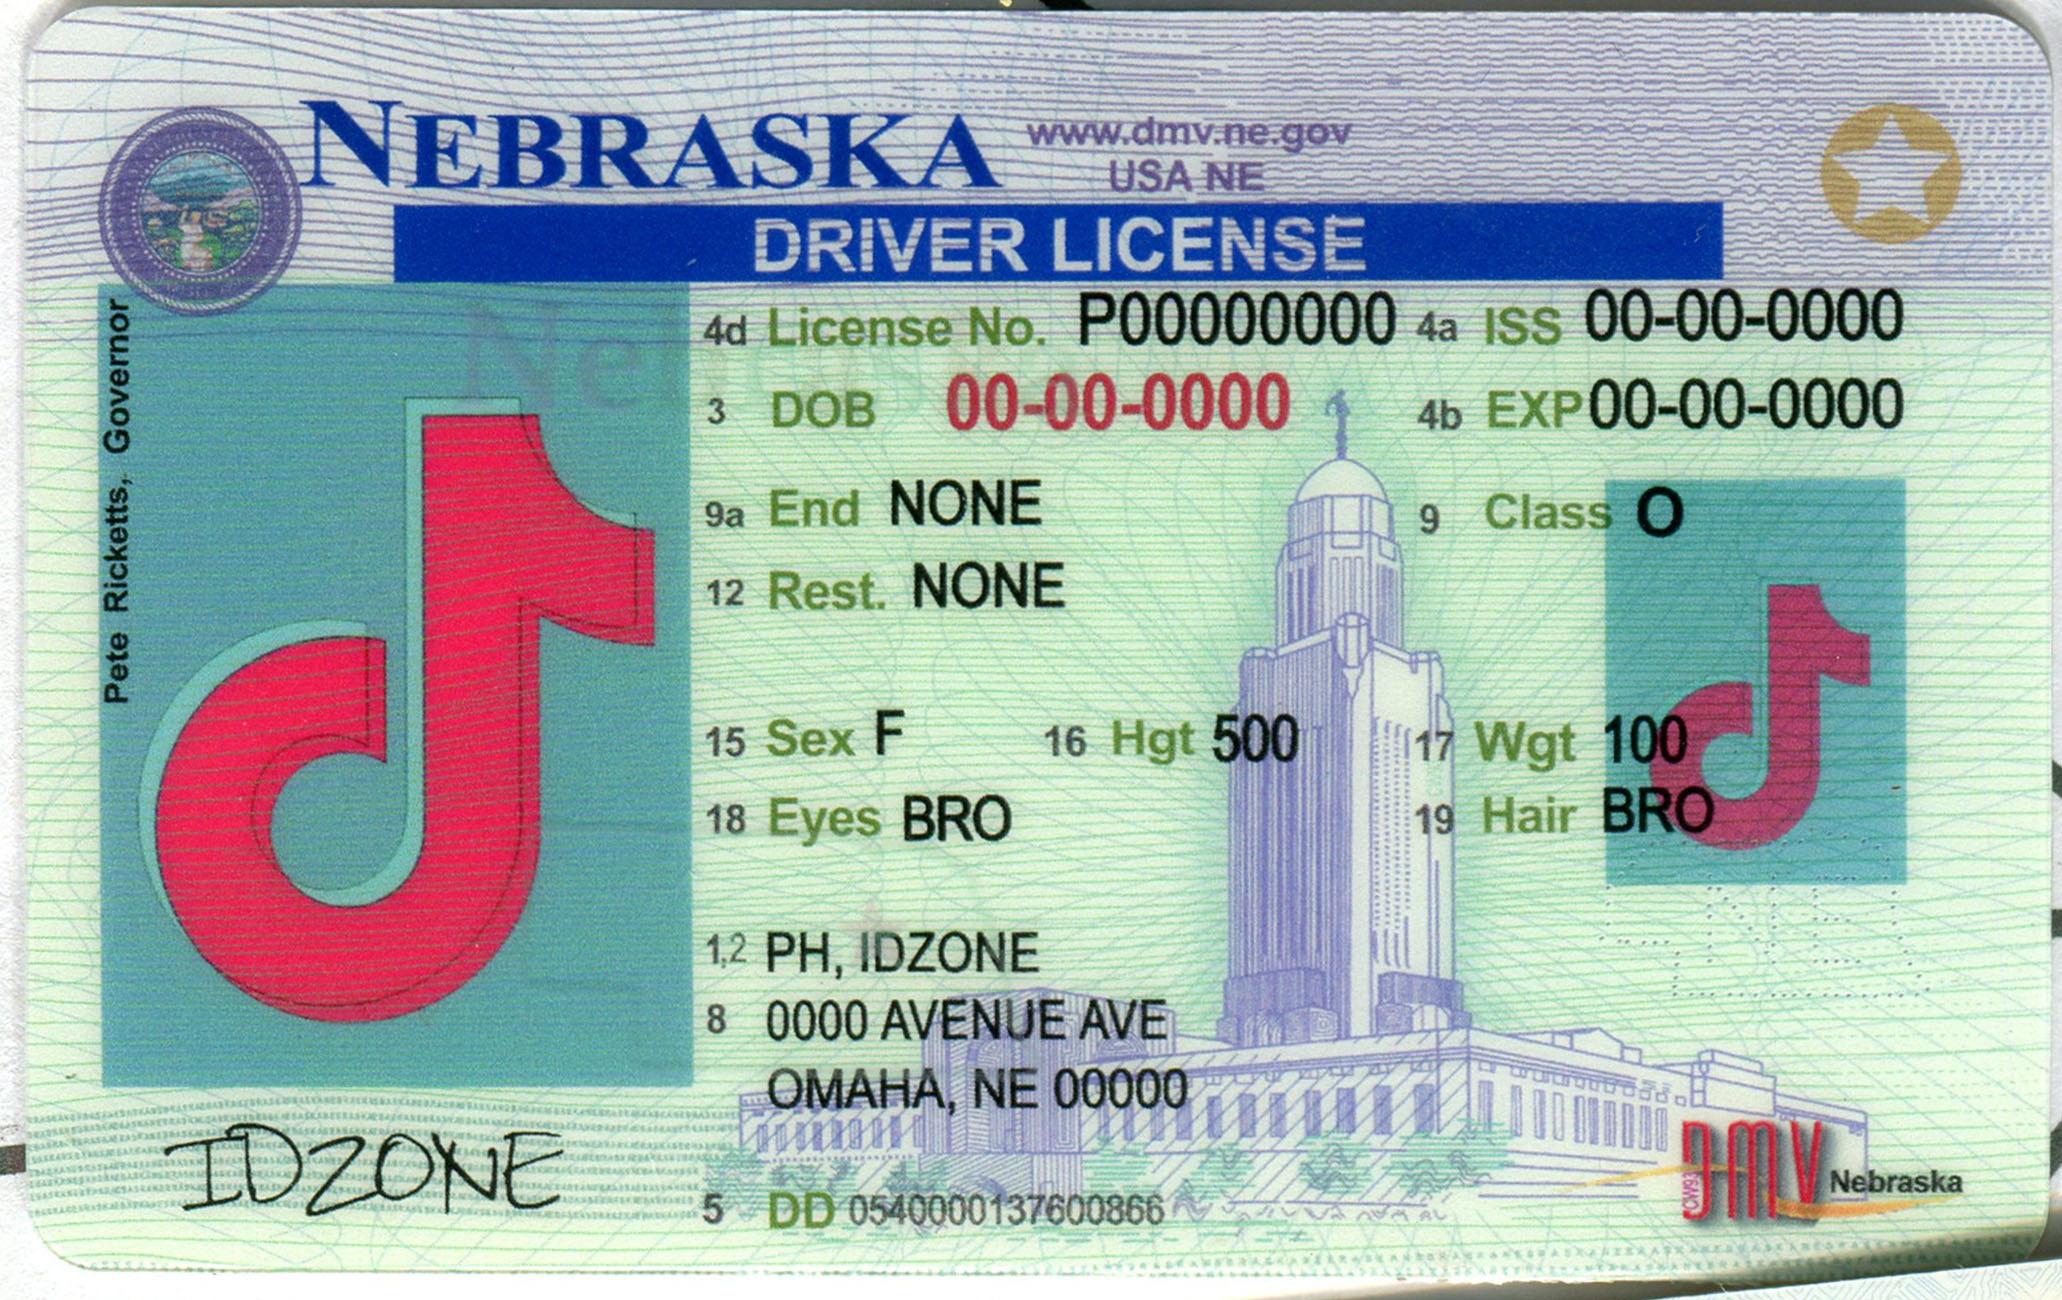 NEBRASKA Scannable fake id